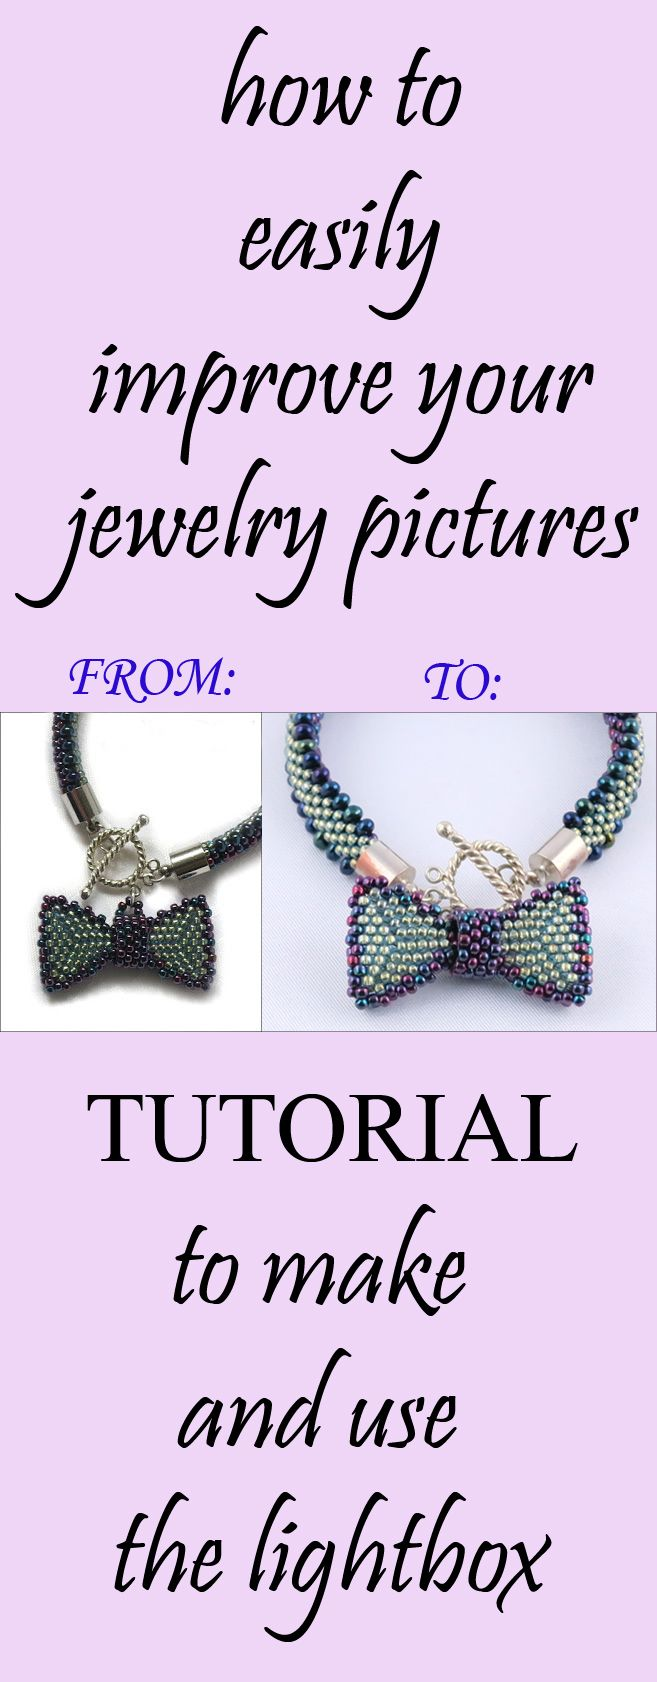 Easy and quick way to improve your jewelry or product photography. DIY lightbox.  #photographytips #tutorial #takebetterpictures #jewelryphotography #productphotography #lightbox #DIY #crafts #photography #phototips #freetutorial